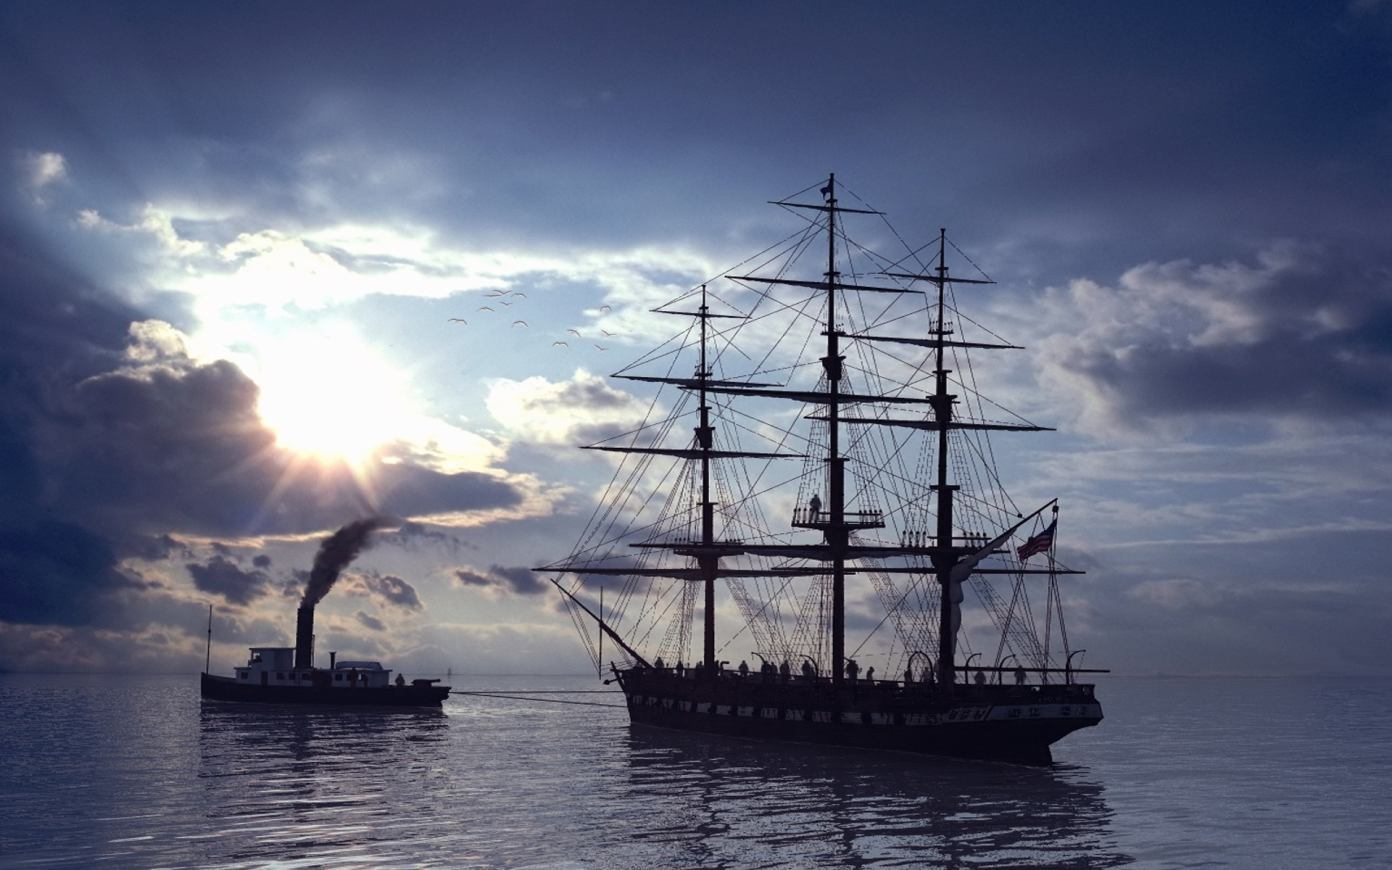 HD WALLPAPERS: SHIP WALLPAPERS